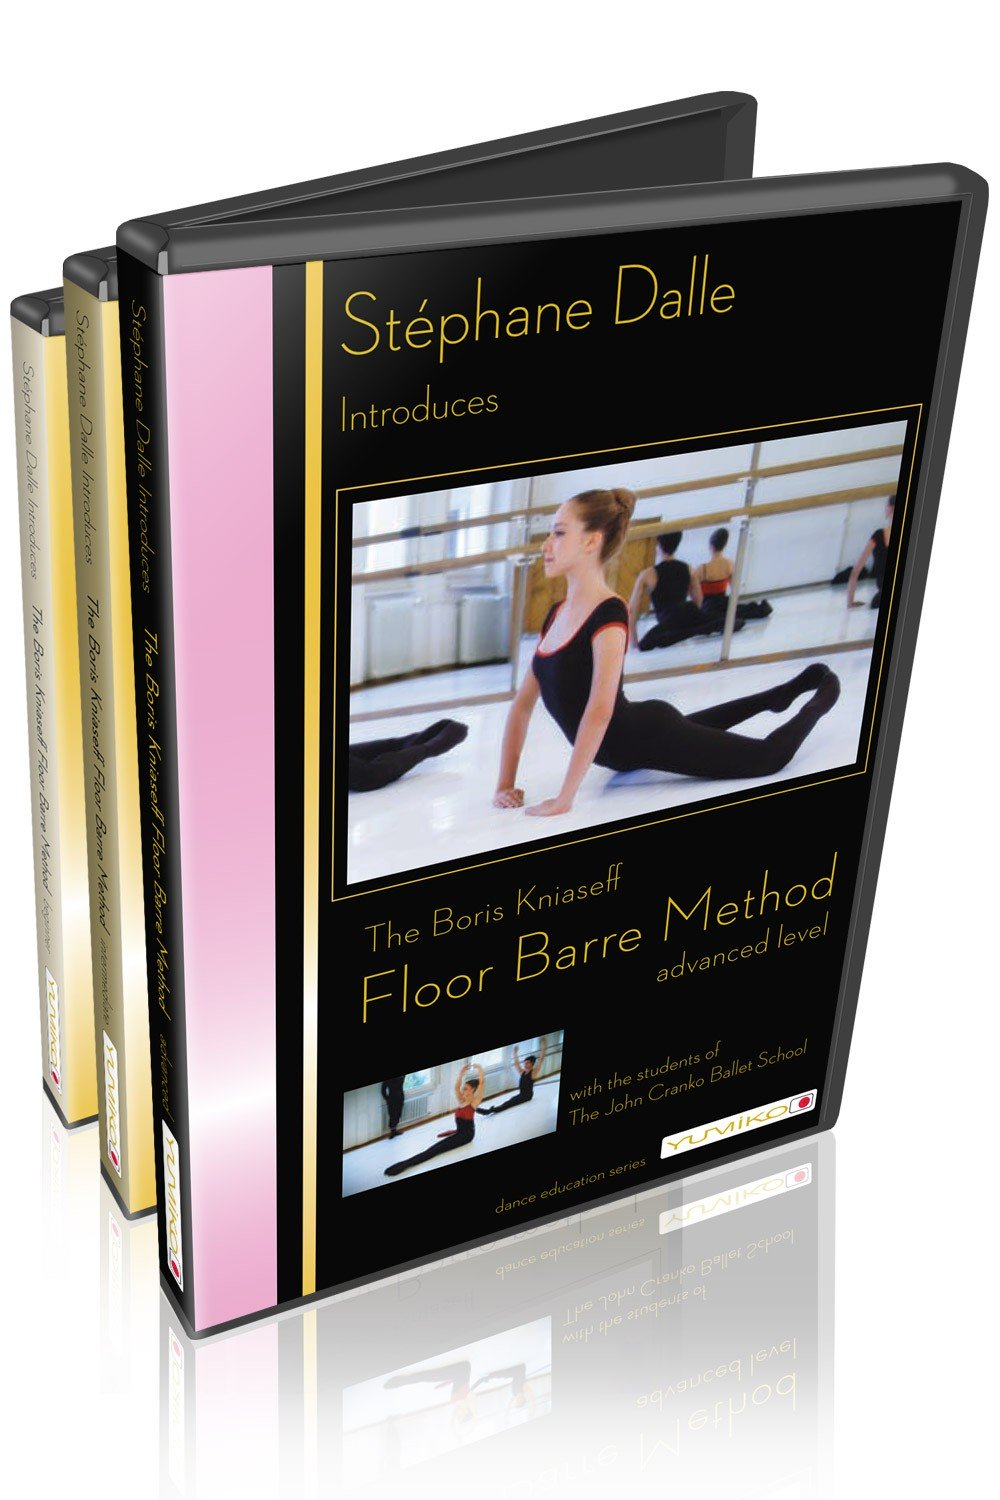 Stéphane Dalle's Floor Barre - DVD Set